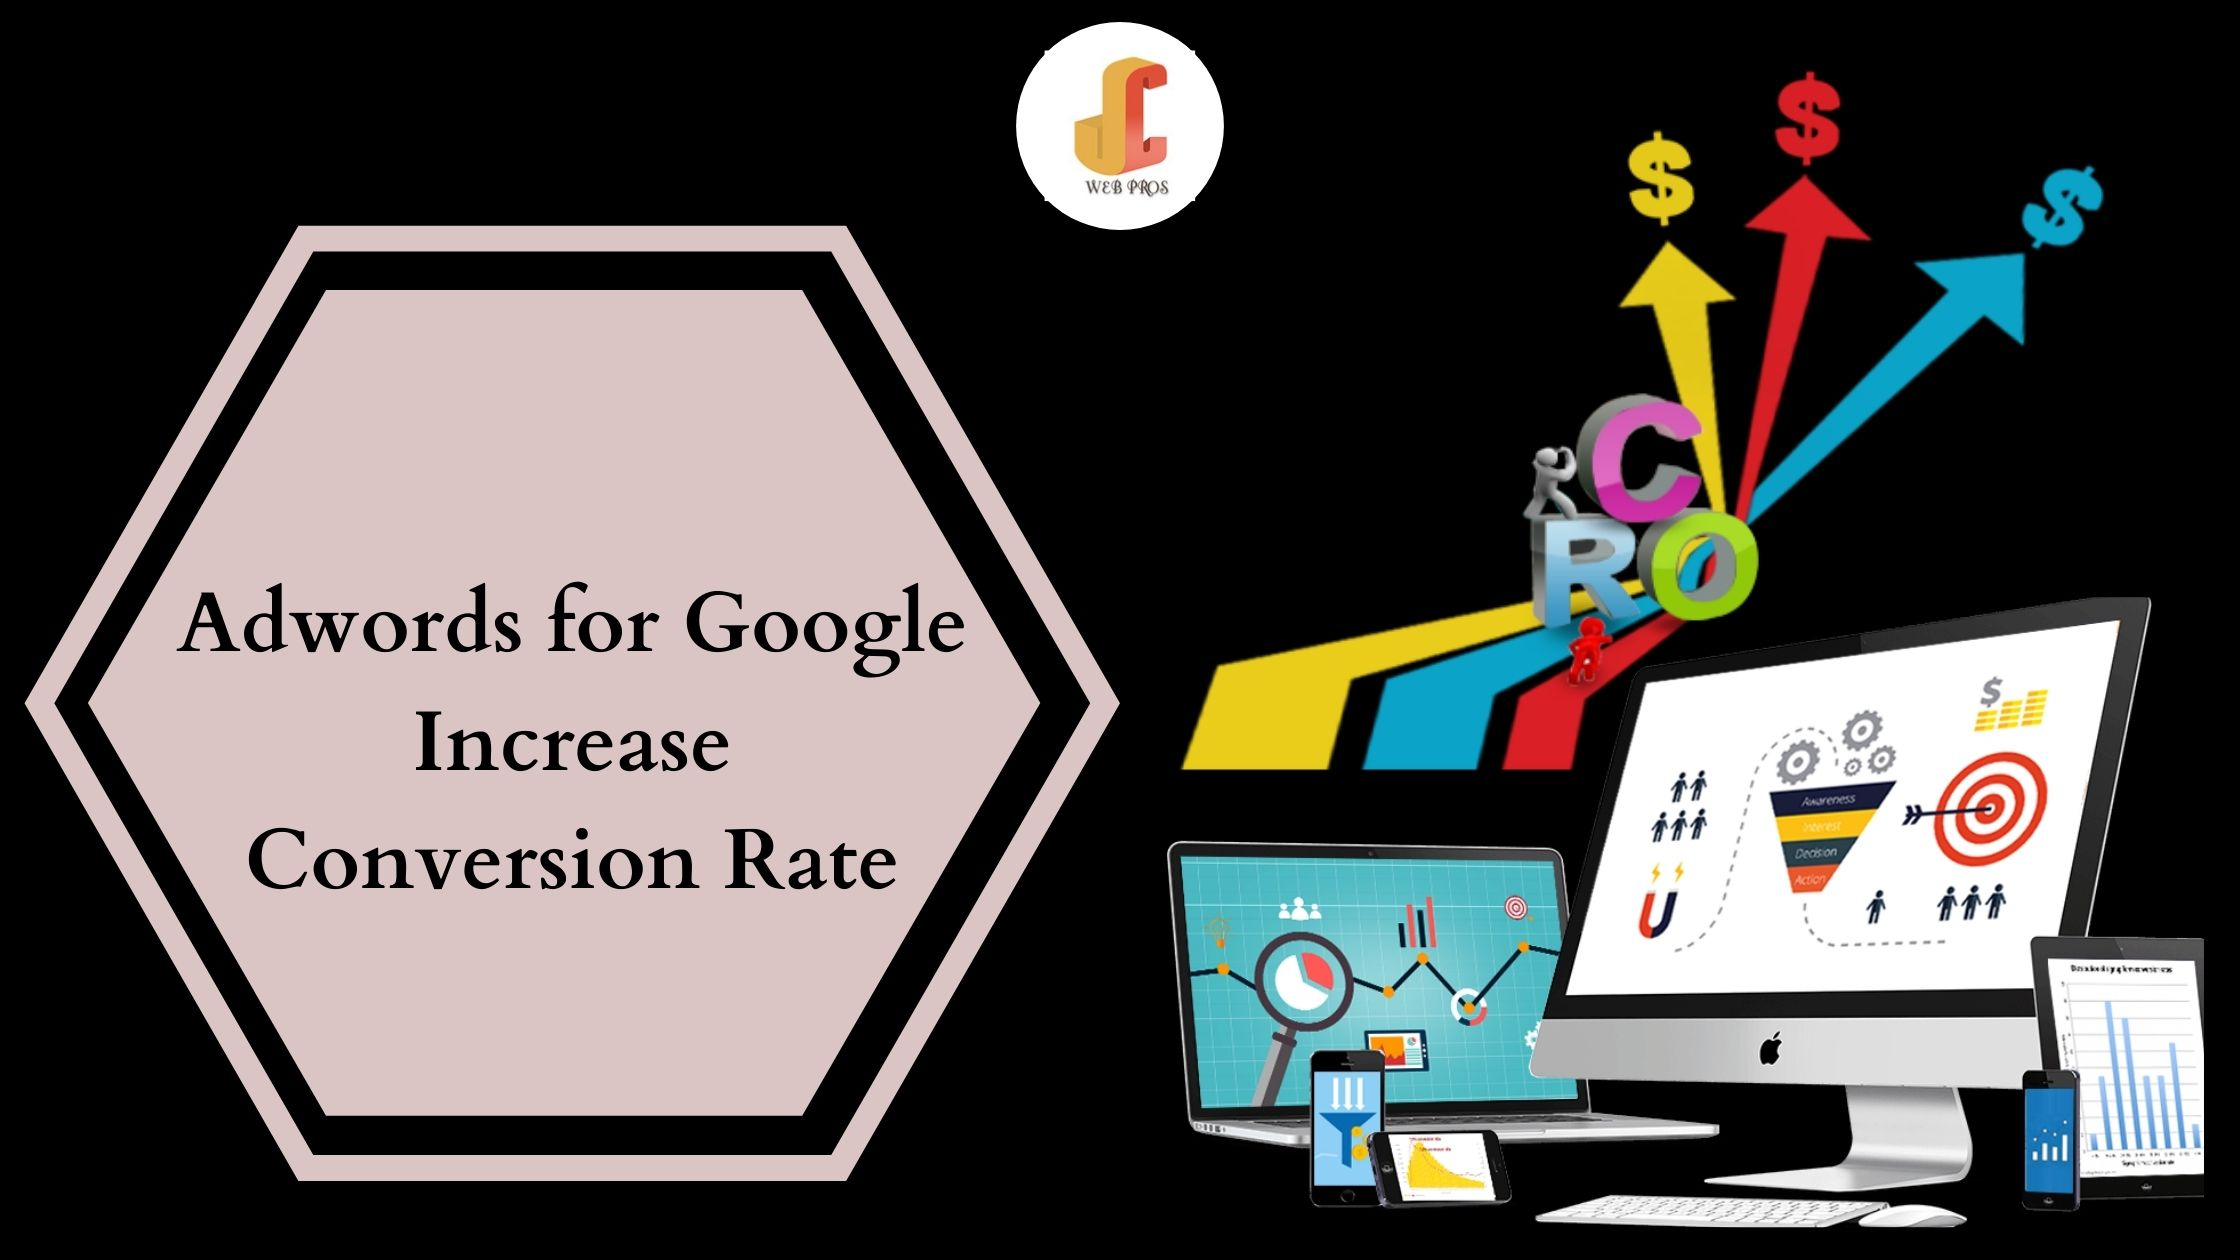 Adwords for Google IncreasesConversion Rate